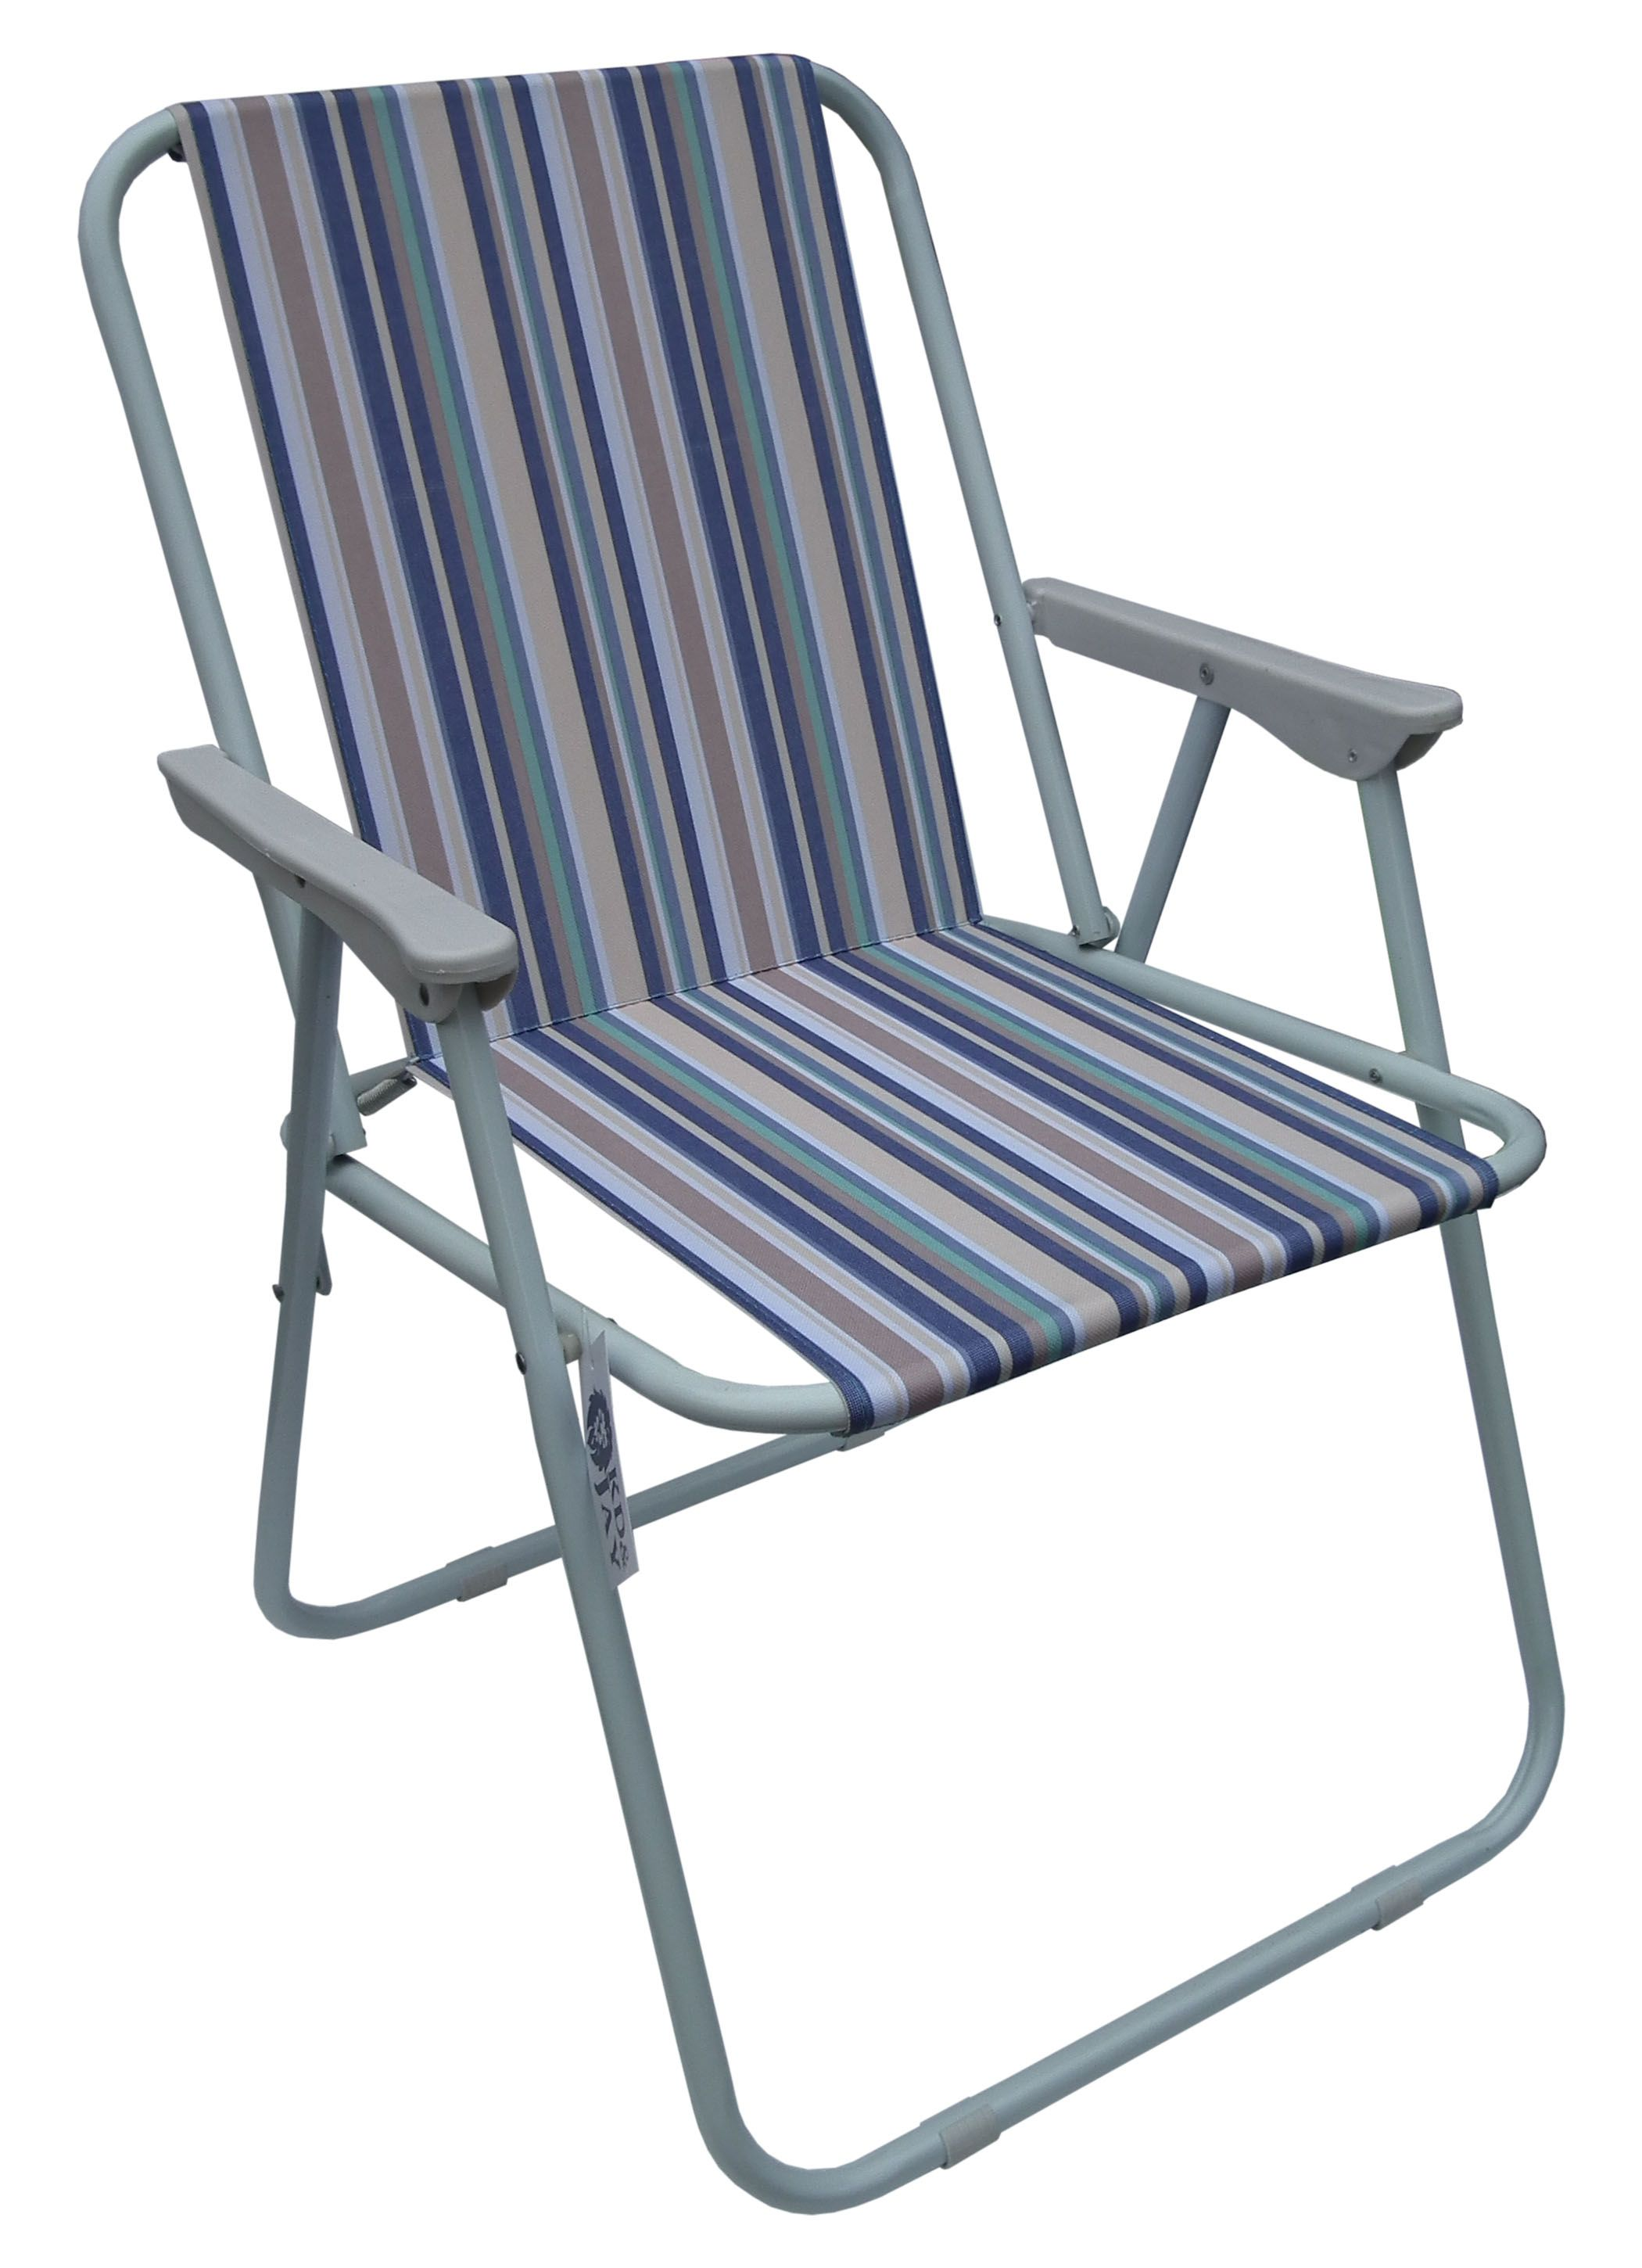 Outdoor Camping Chair Outdoor Folding Chairs Folding Beach